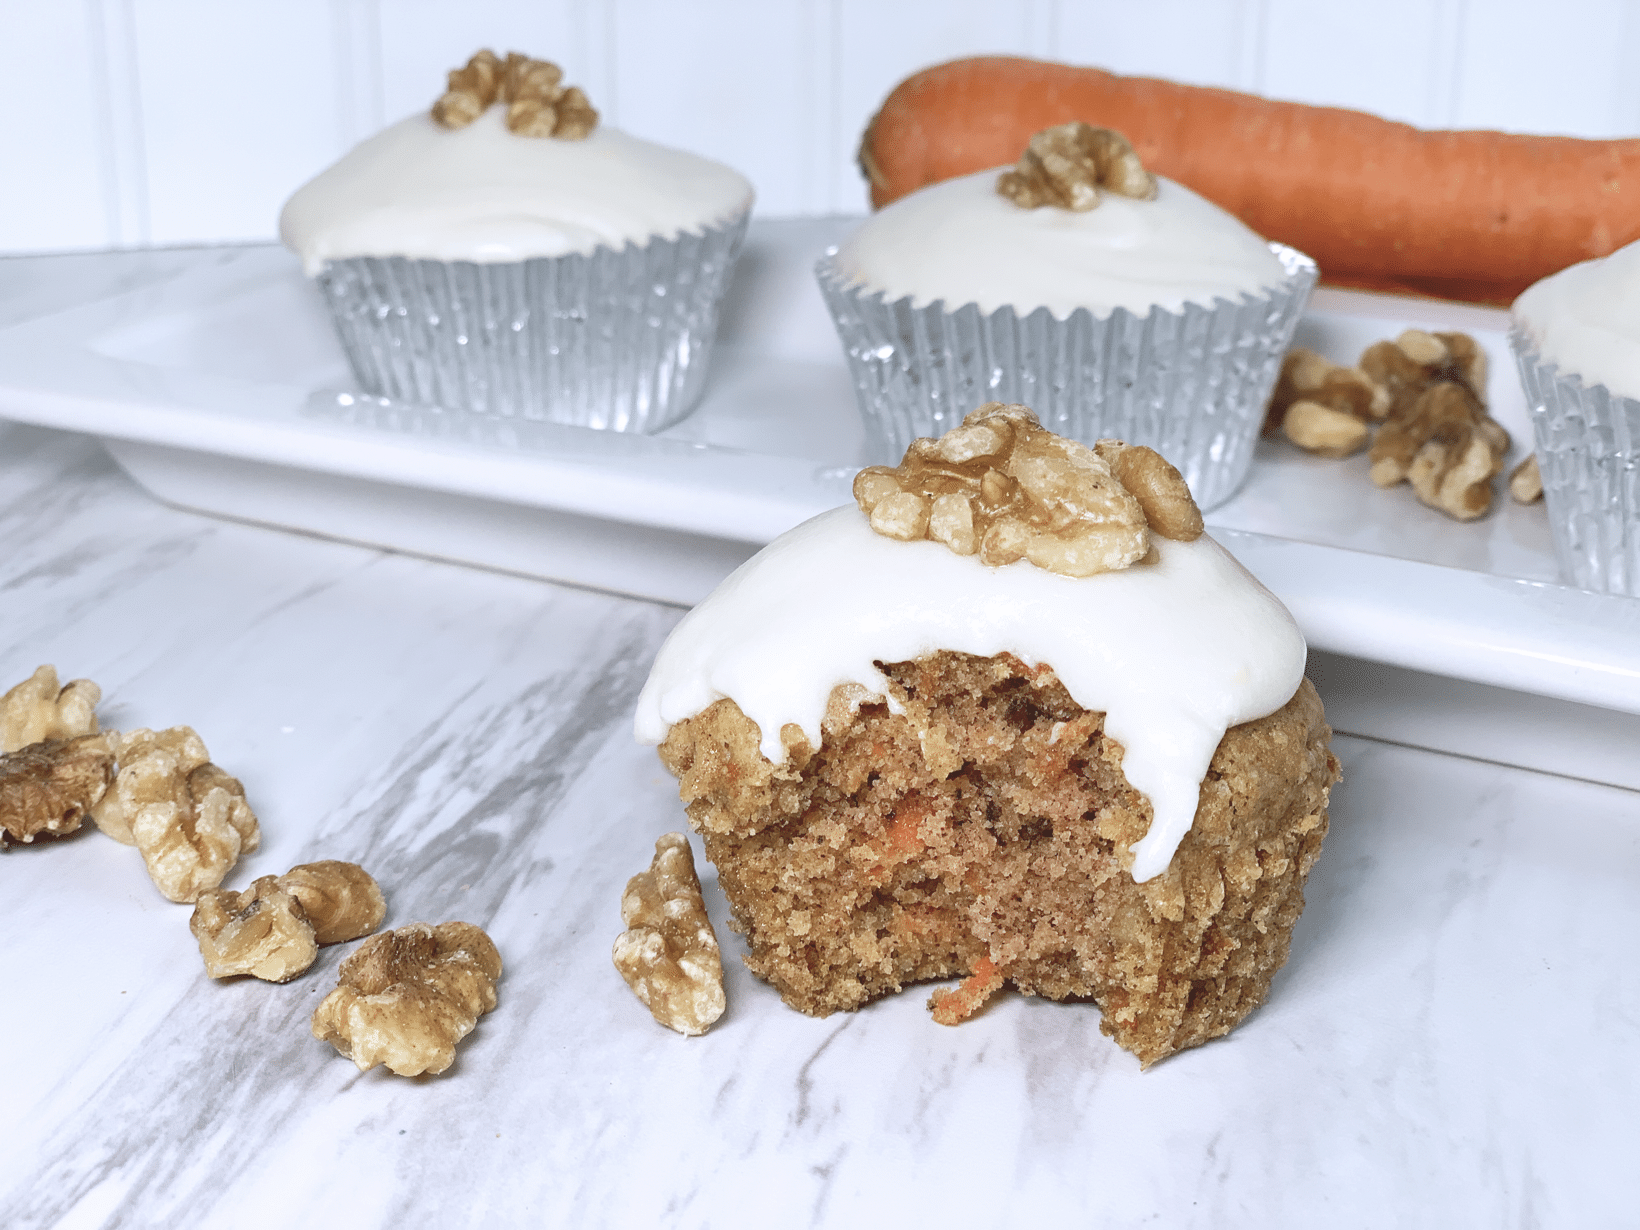 Gluten free dairy free carrot cake cupcake with dairy free cream cheese icing